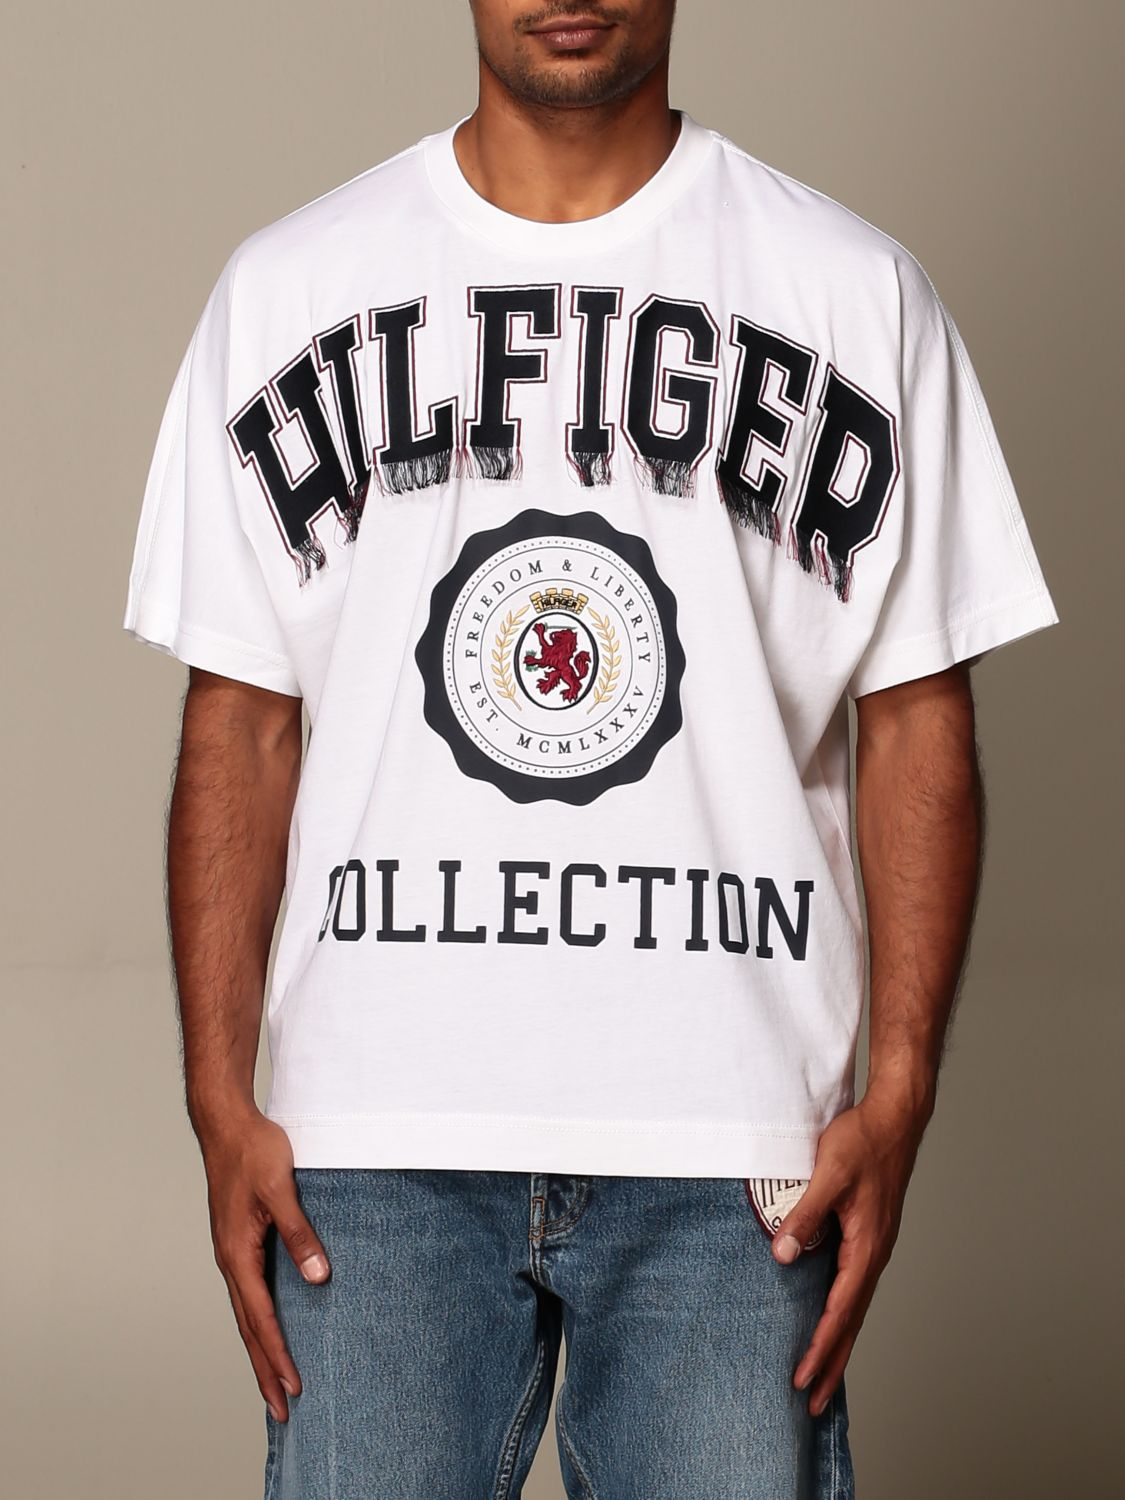 T-Shirt Hilfiger Collection: T-shirt herren Hilfiger Collection weiß 1